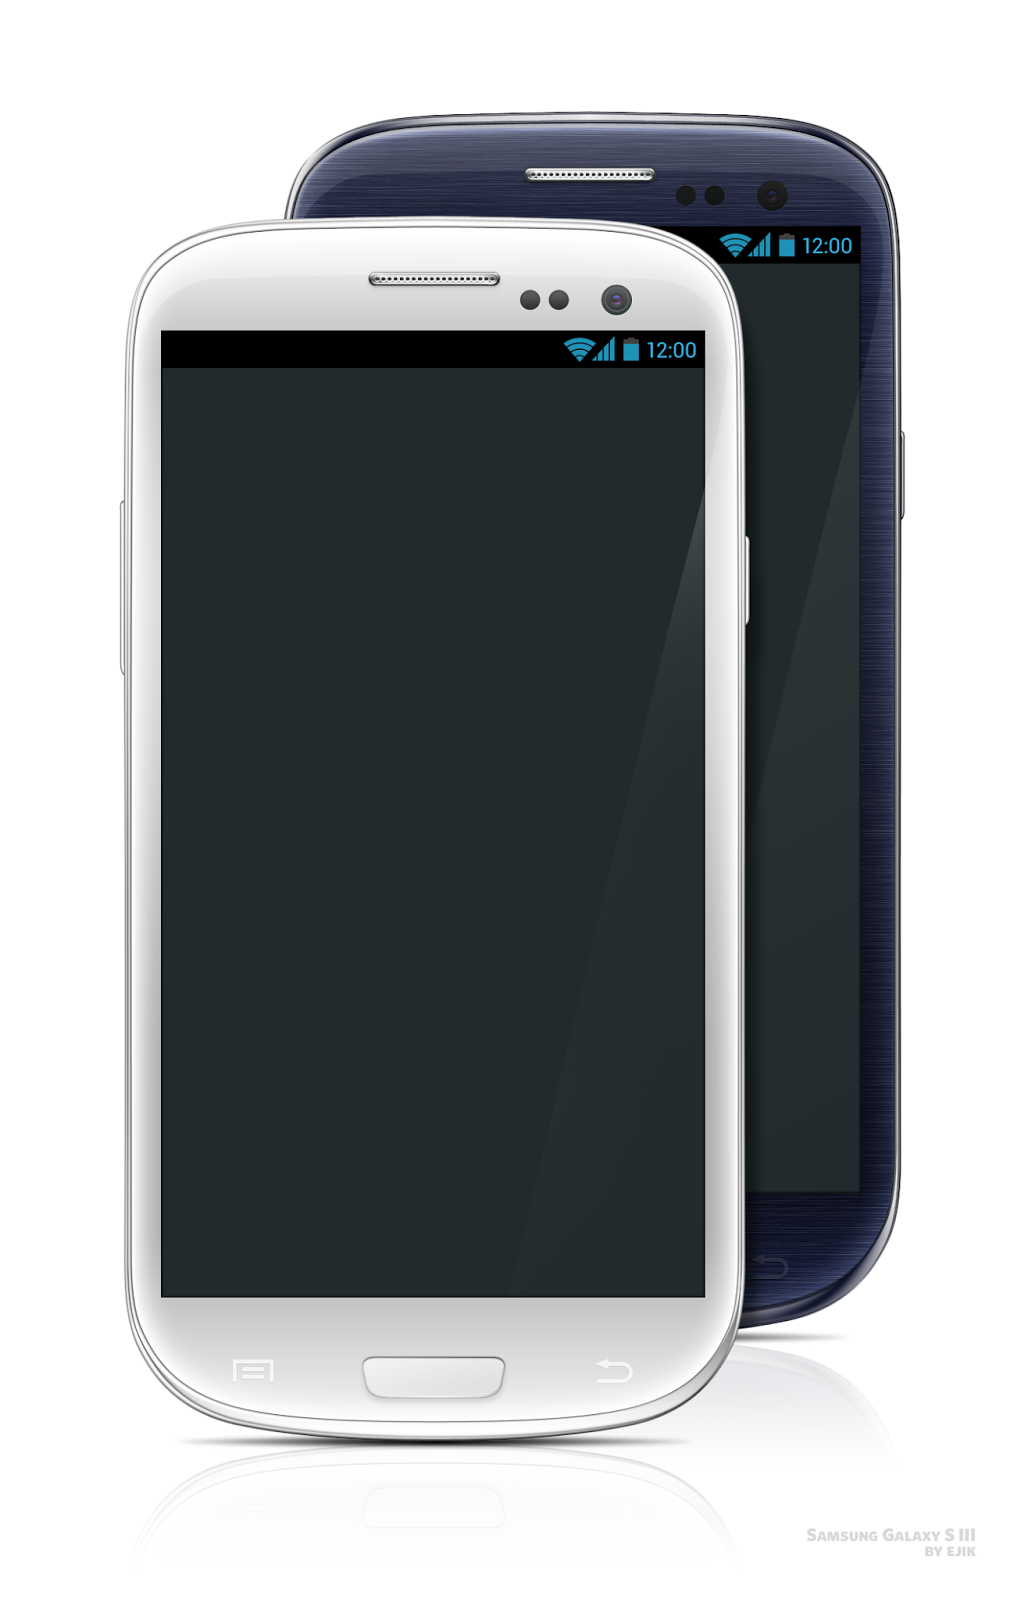 Galaxy S3 White & Black PSD Template